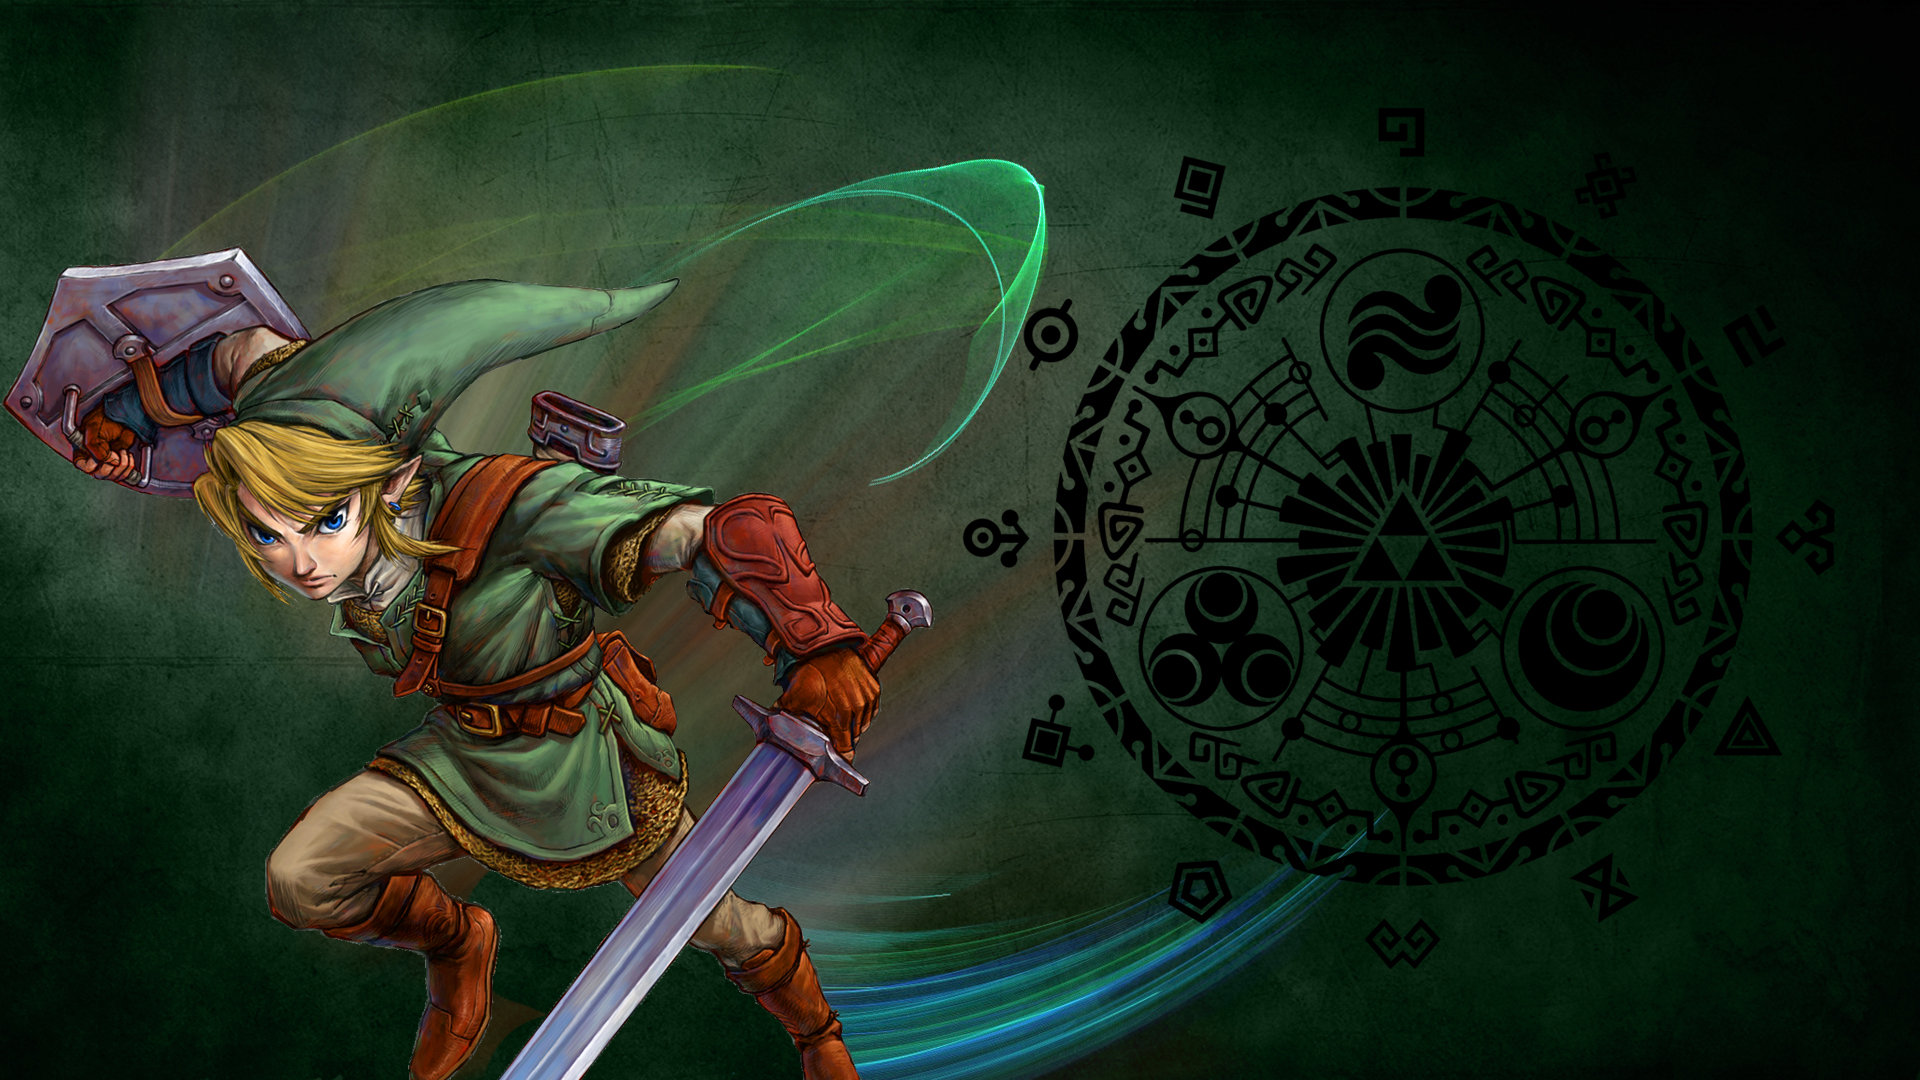 twilight princess wallpaper borkky art 1920x1080